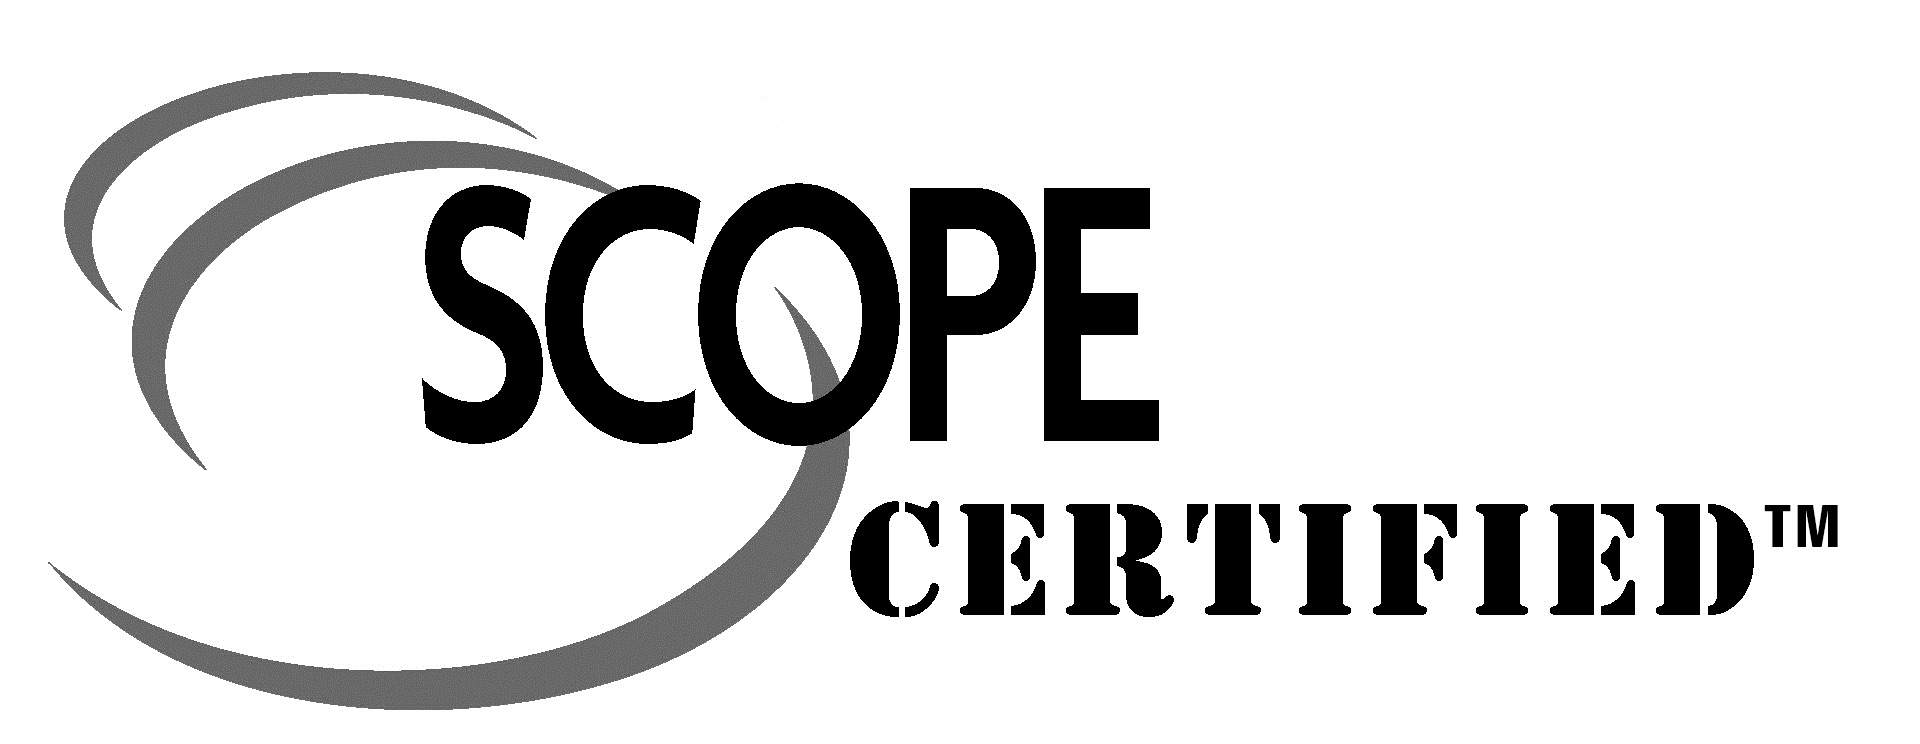 1 SCOPE Certified logoTM.jpg